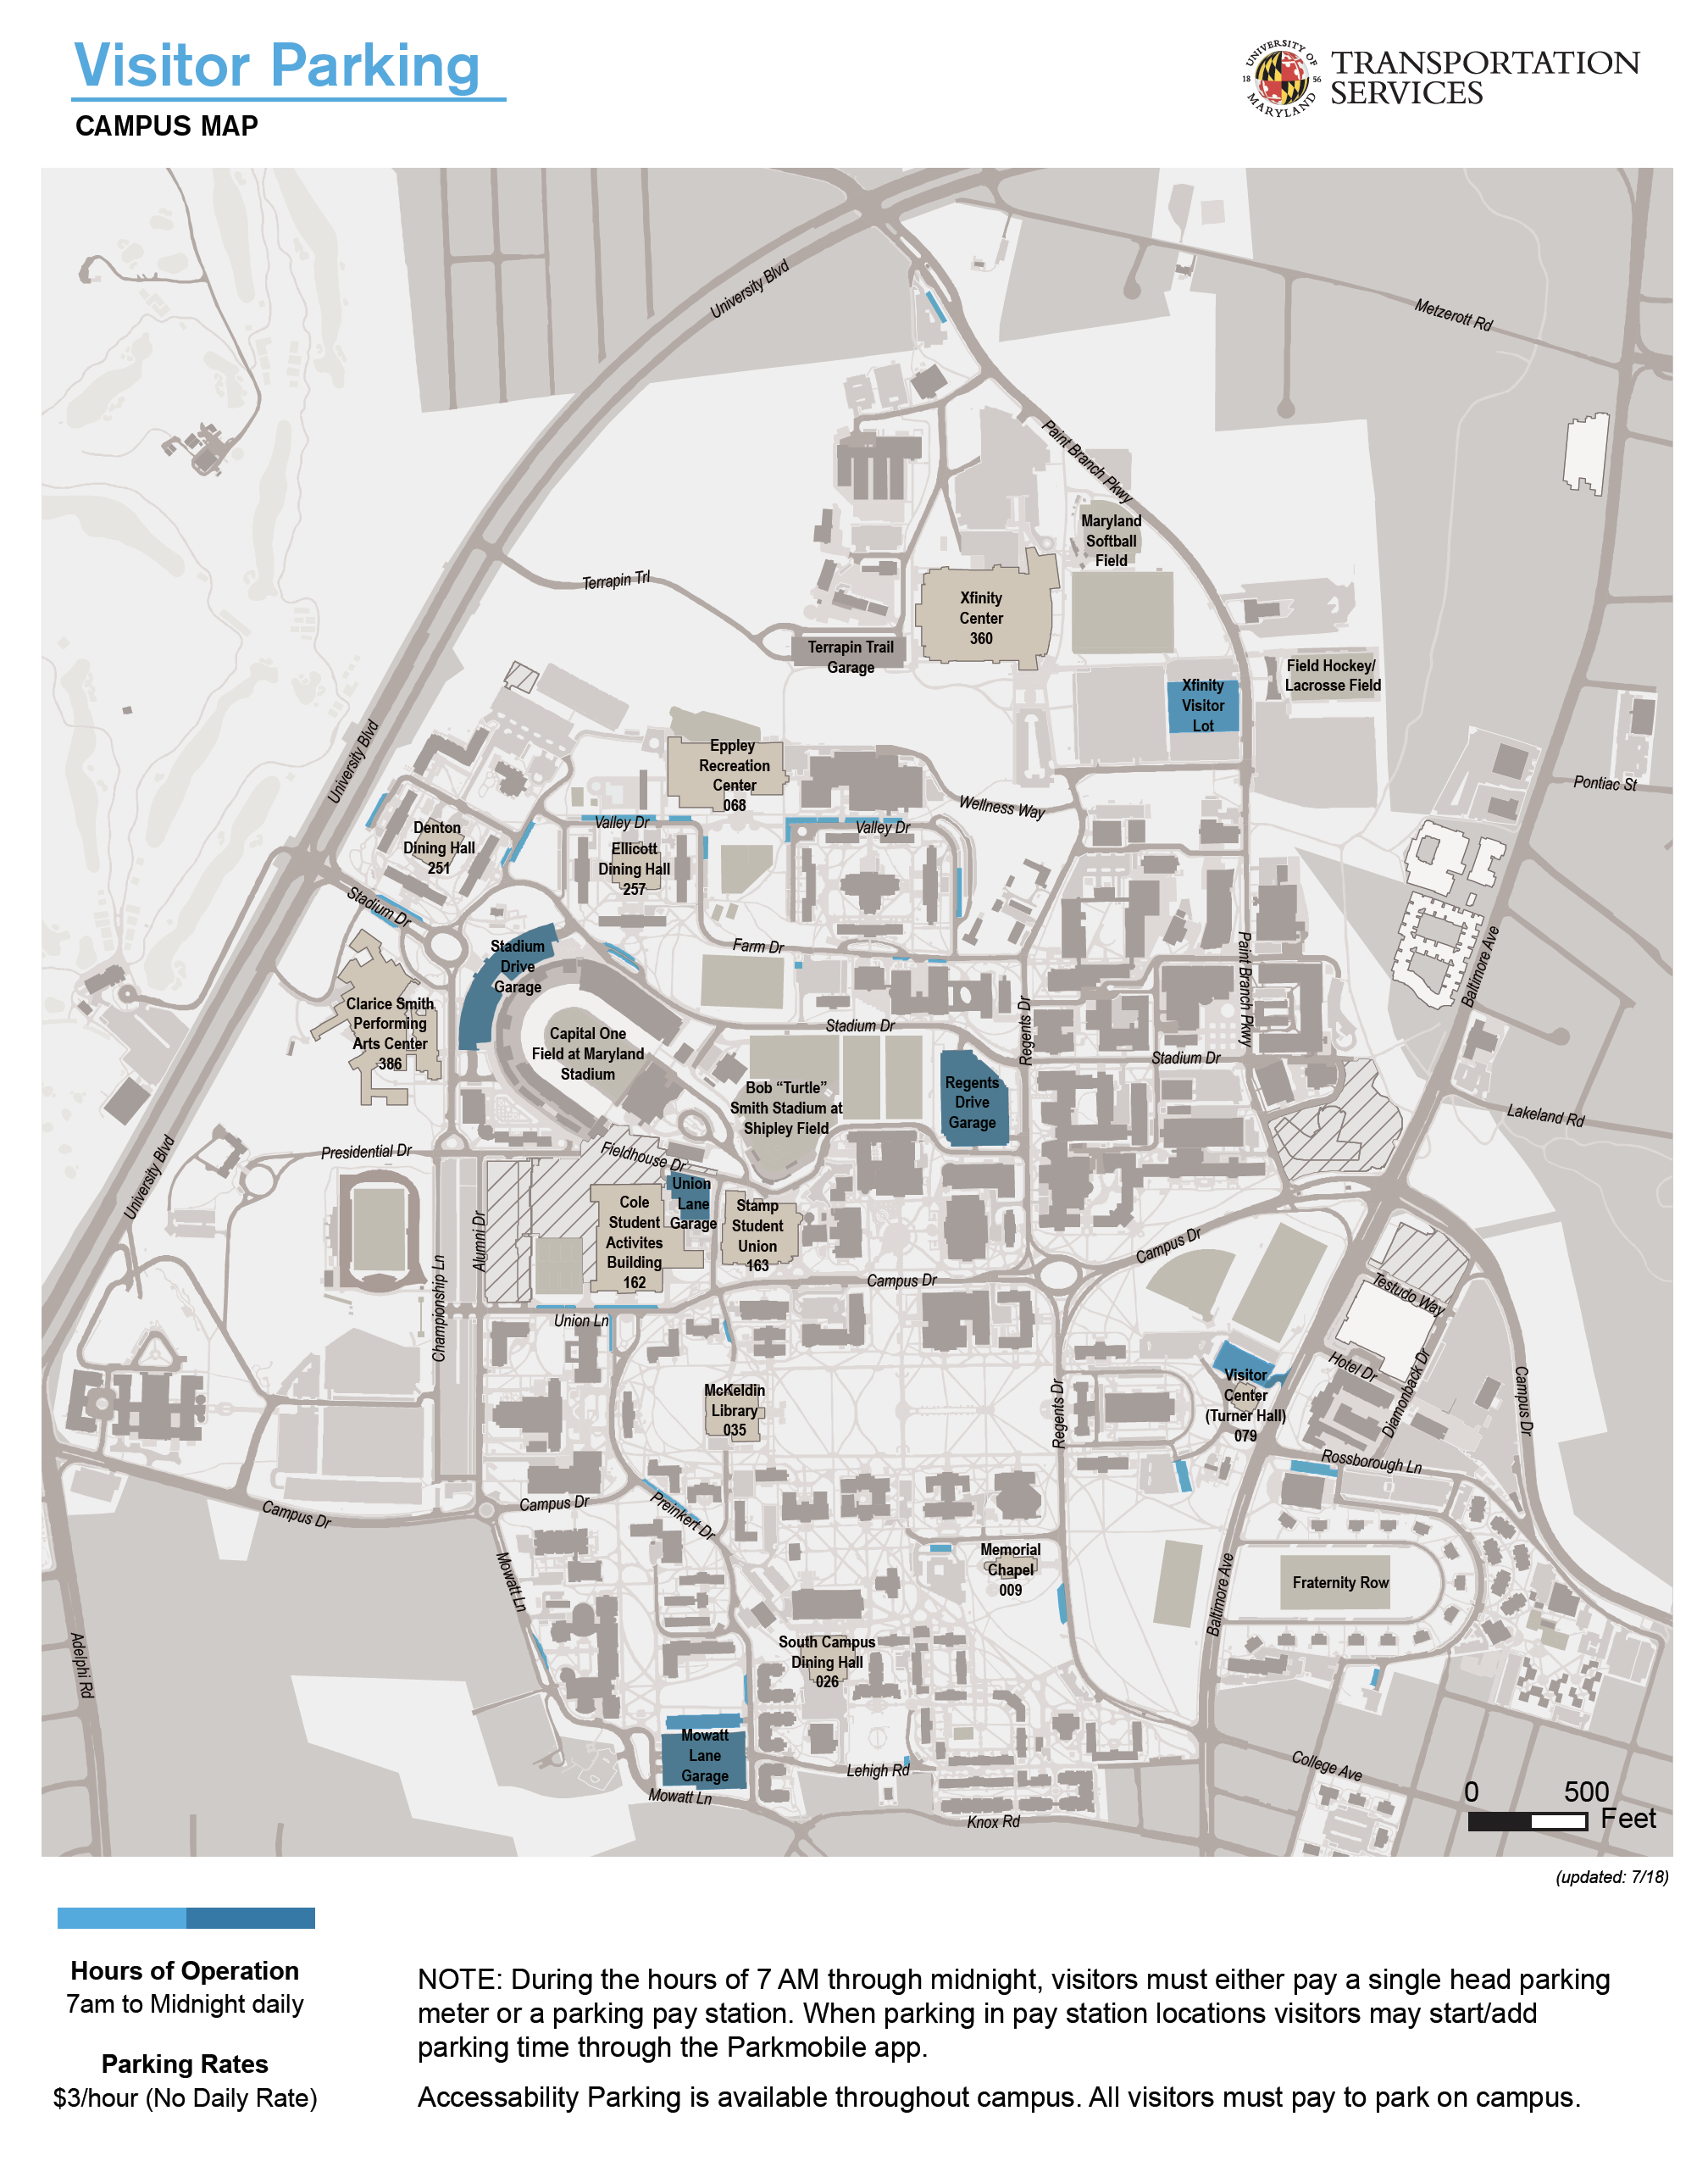 university of md campus map Visitor Parking Map Umd Dots university of md campus map